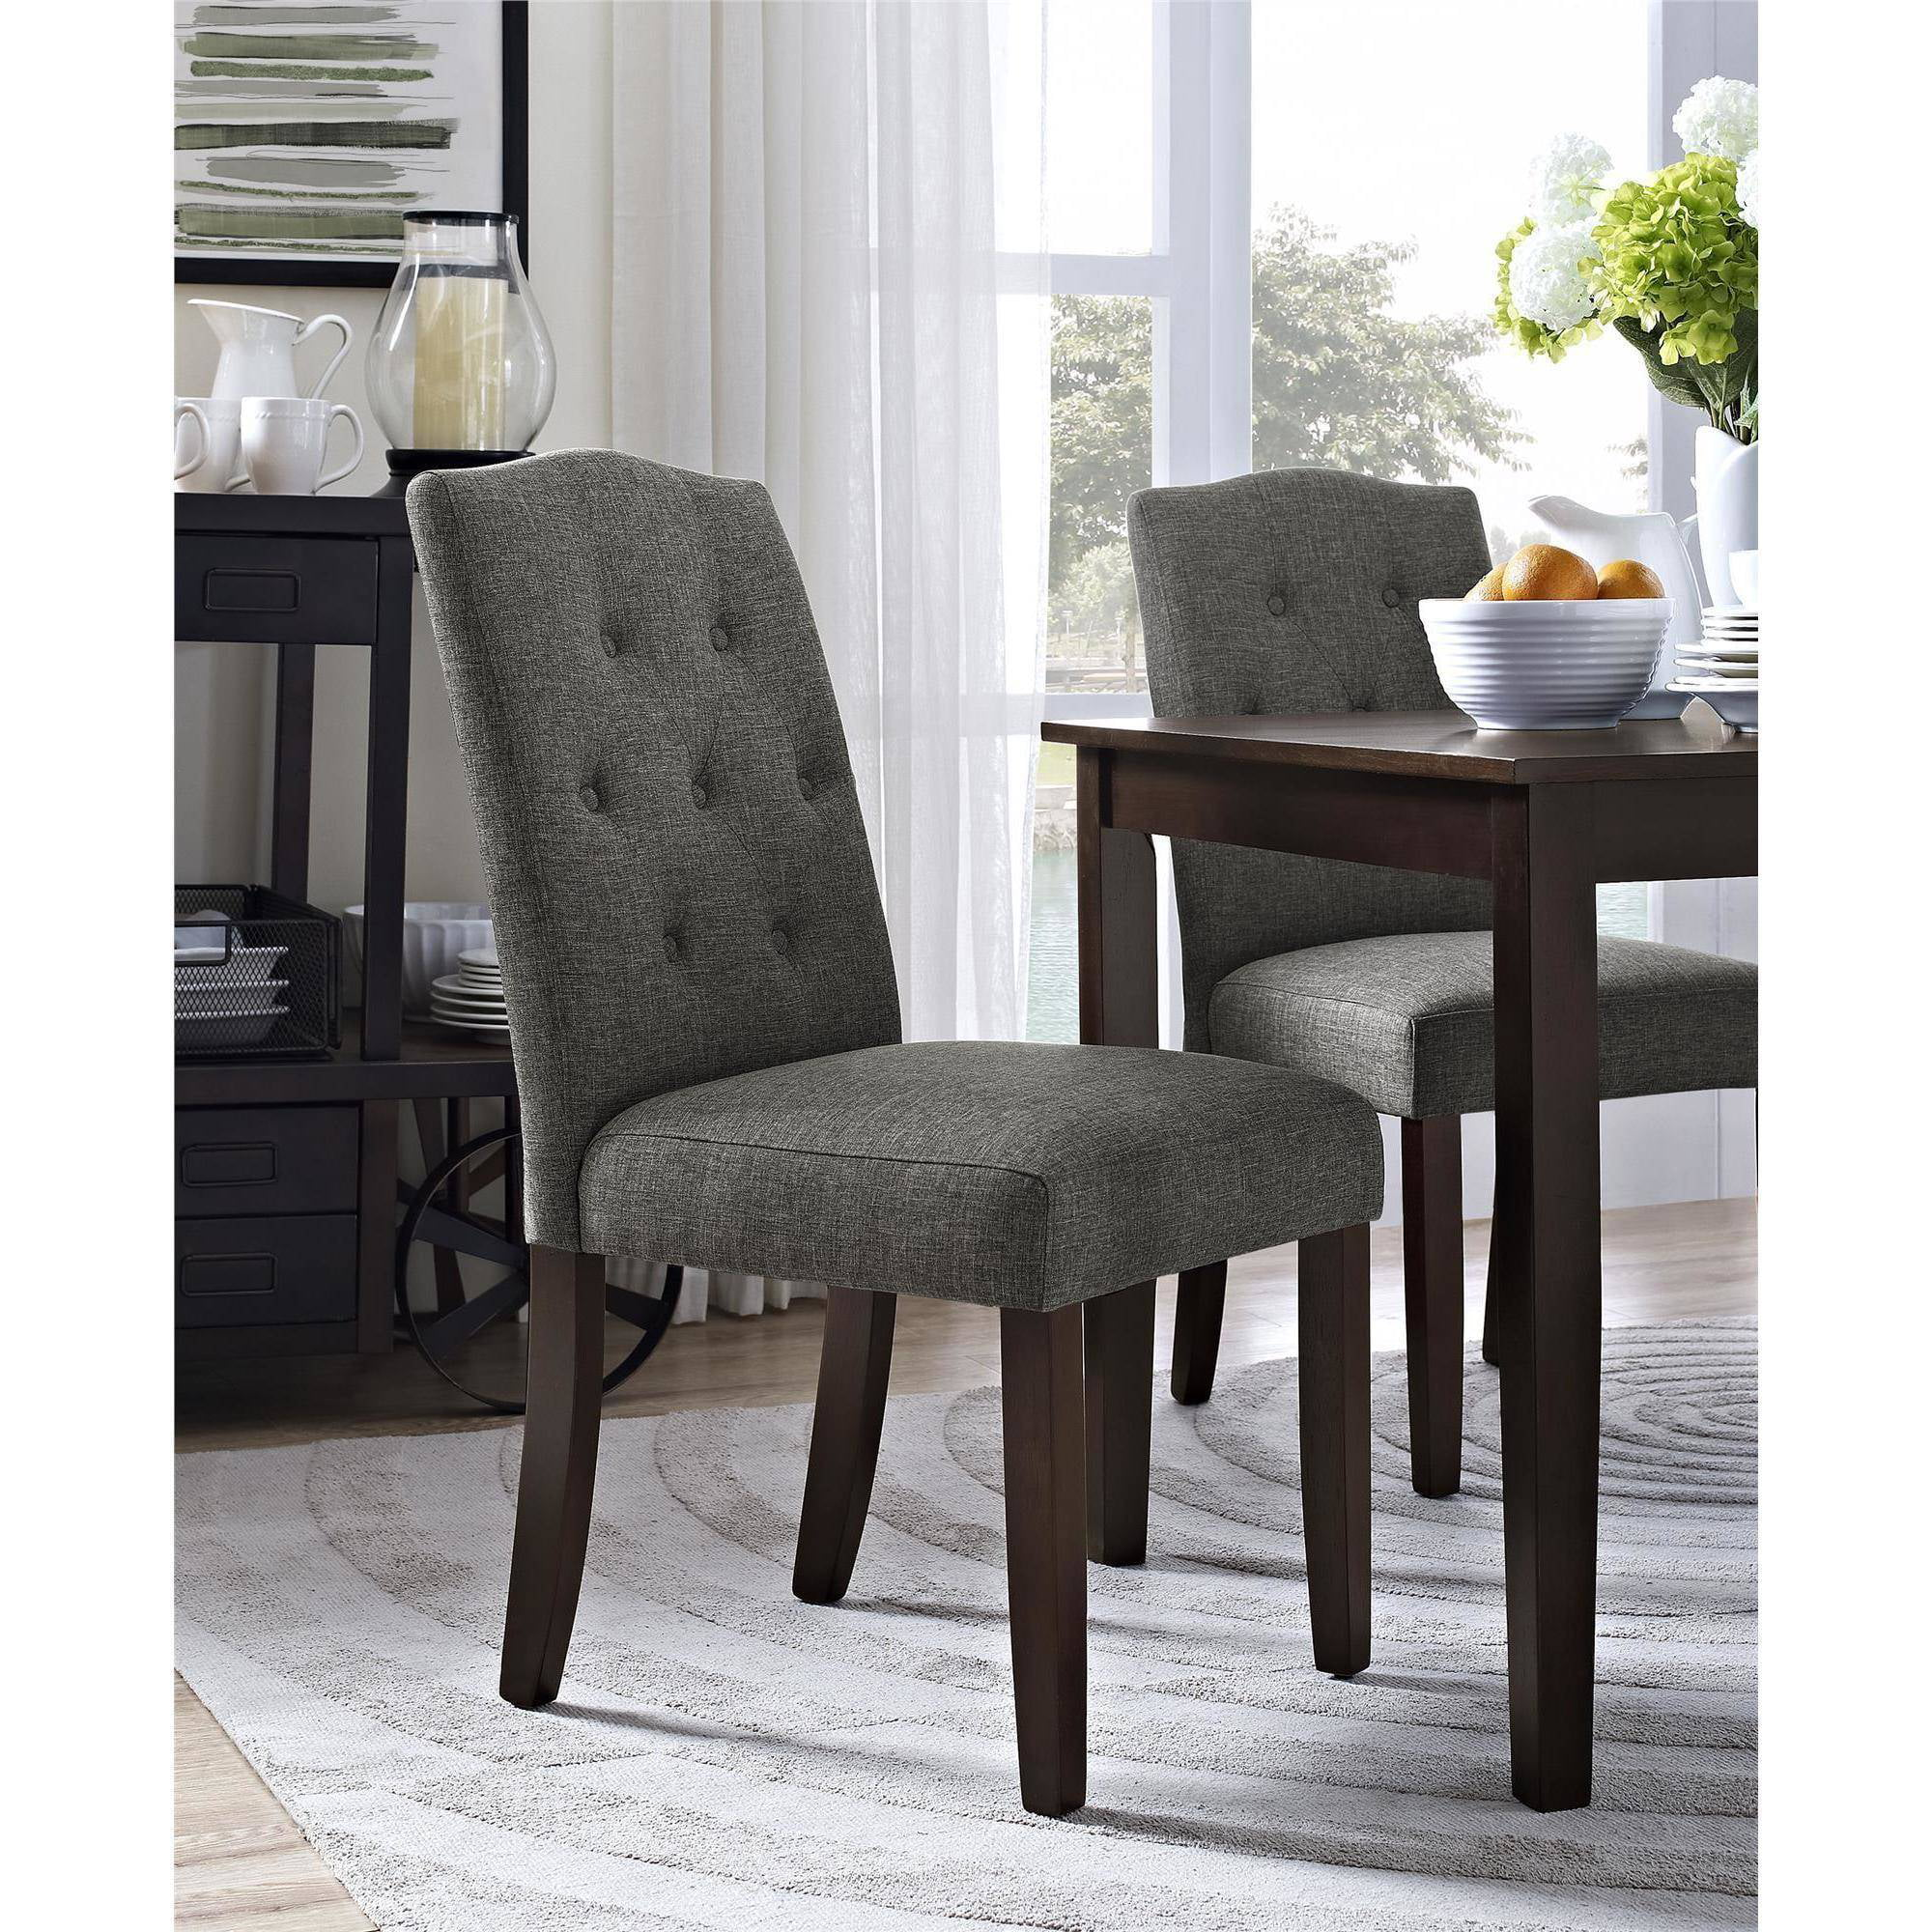 tufted dining room chairs chair covers gumtree glasgow better homes and gardens parsons multiple colors walmart com